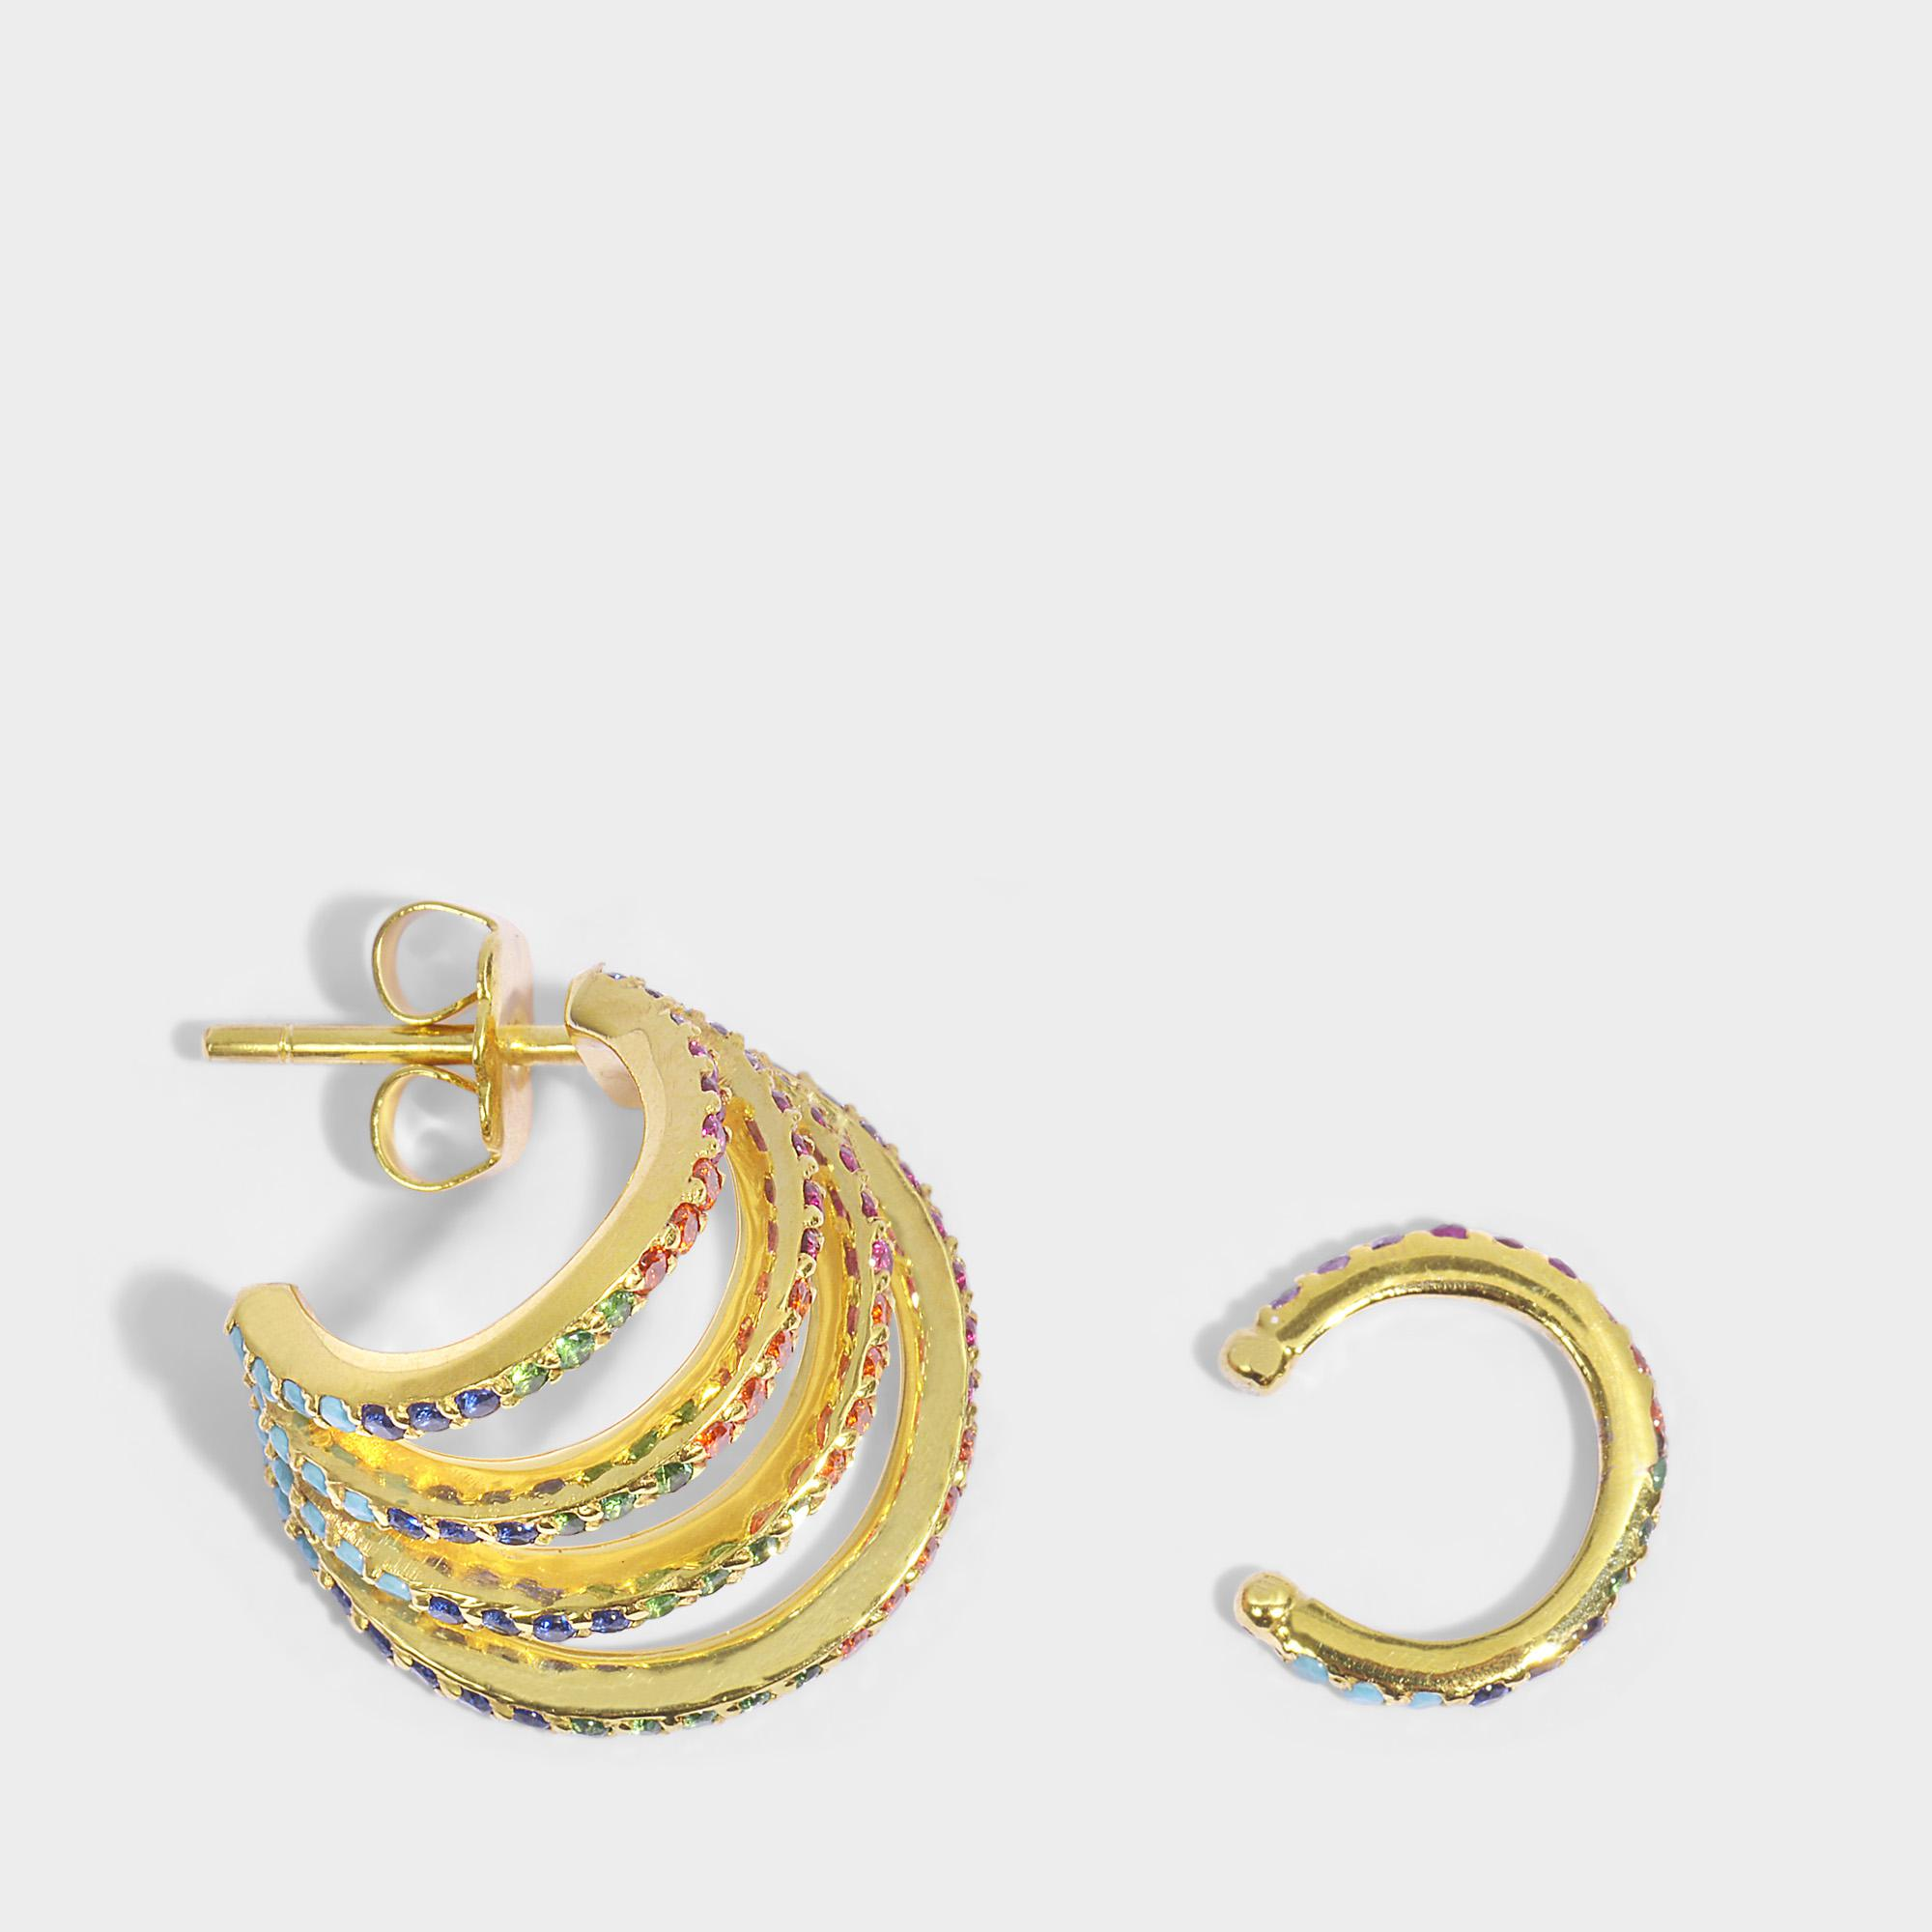 Joanna Laura Constantine Criss Cross Rainbow Earrings in Multi Gold-Plated Brass with Multicolored Stones yK2ceIvtmk